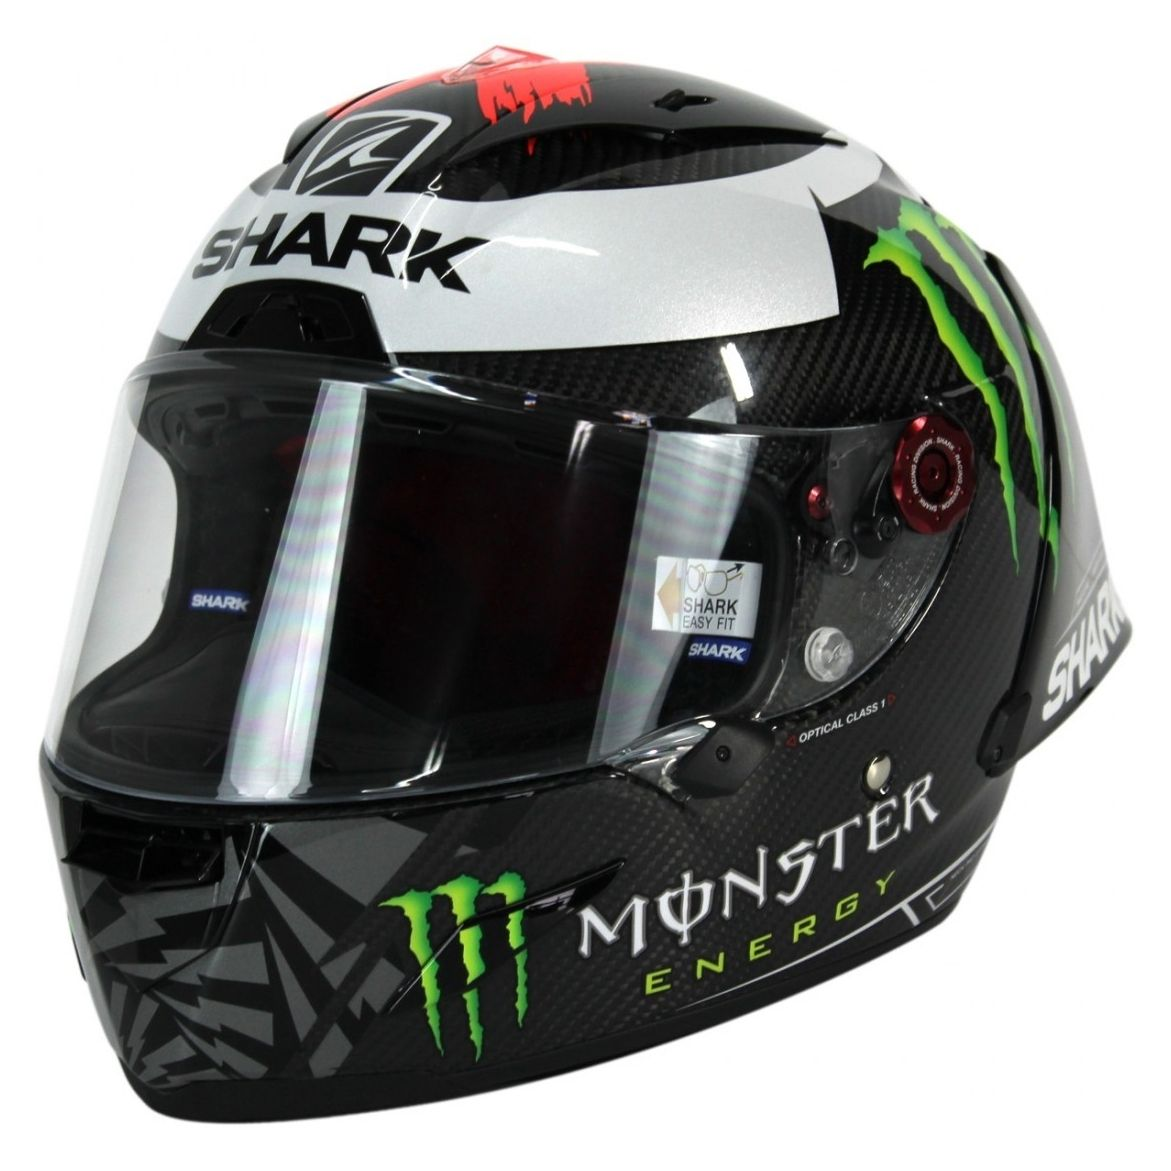 casque shark race r pro gp replica lorenzo winter test casque int gral. Black Bedroom Furniture Sets. Home Design Ideas